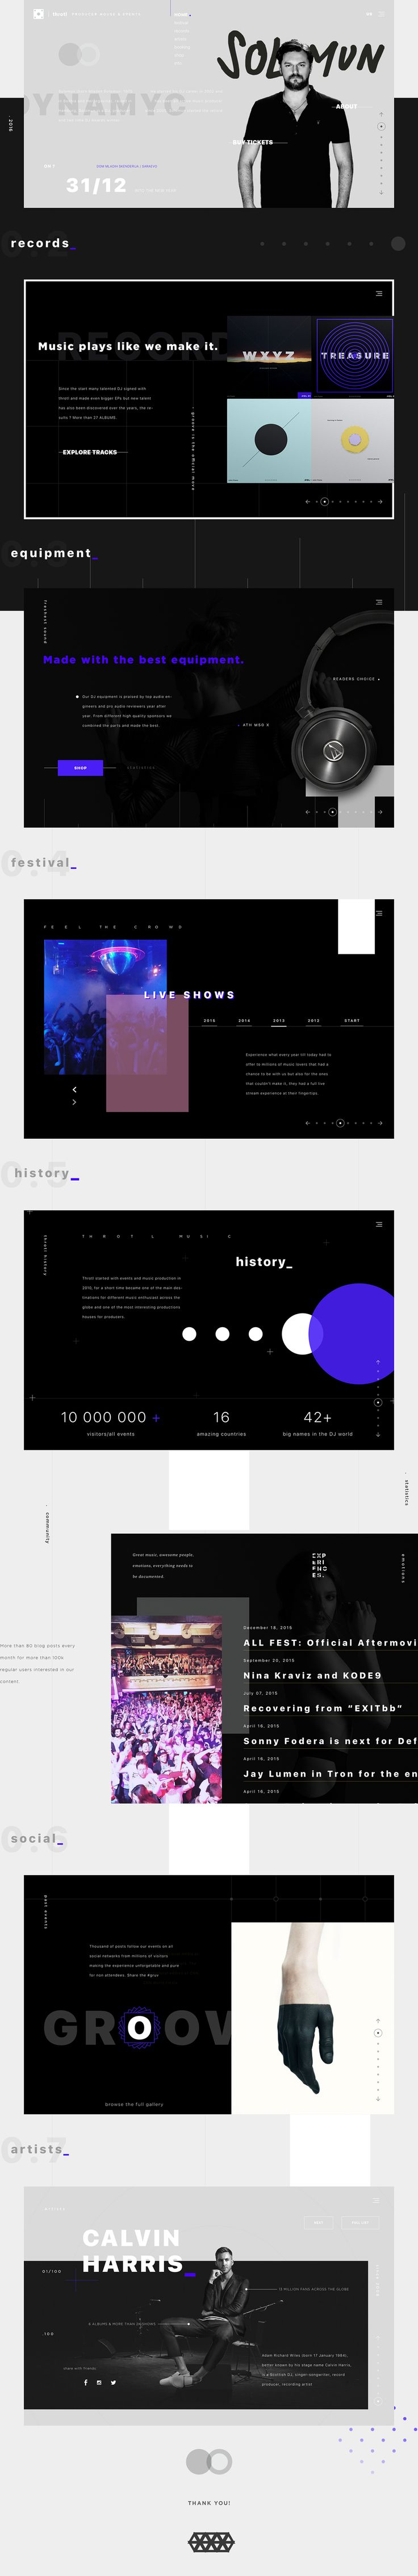 Full website experience design for a music producing and event organizing company ( throtl_ ) Elegant typography and a detailed color palette with some very subtle photography was the way to transfer events energy to the visiting crowd.